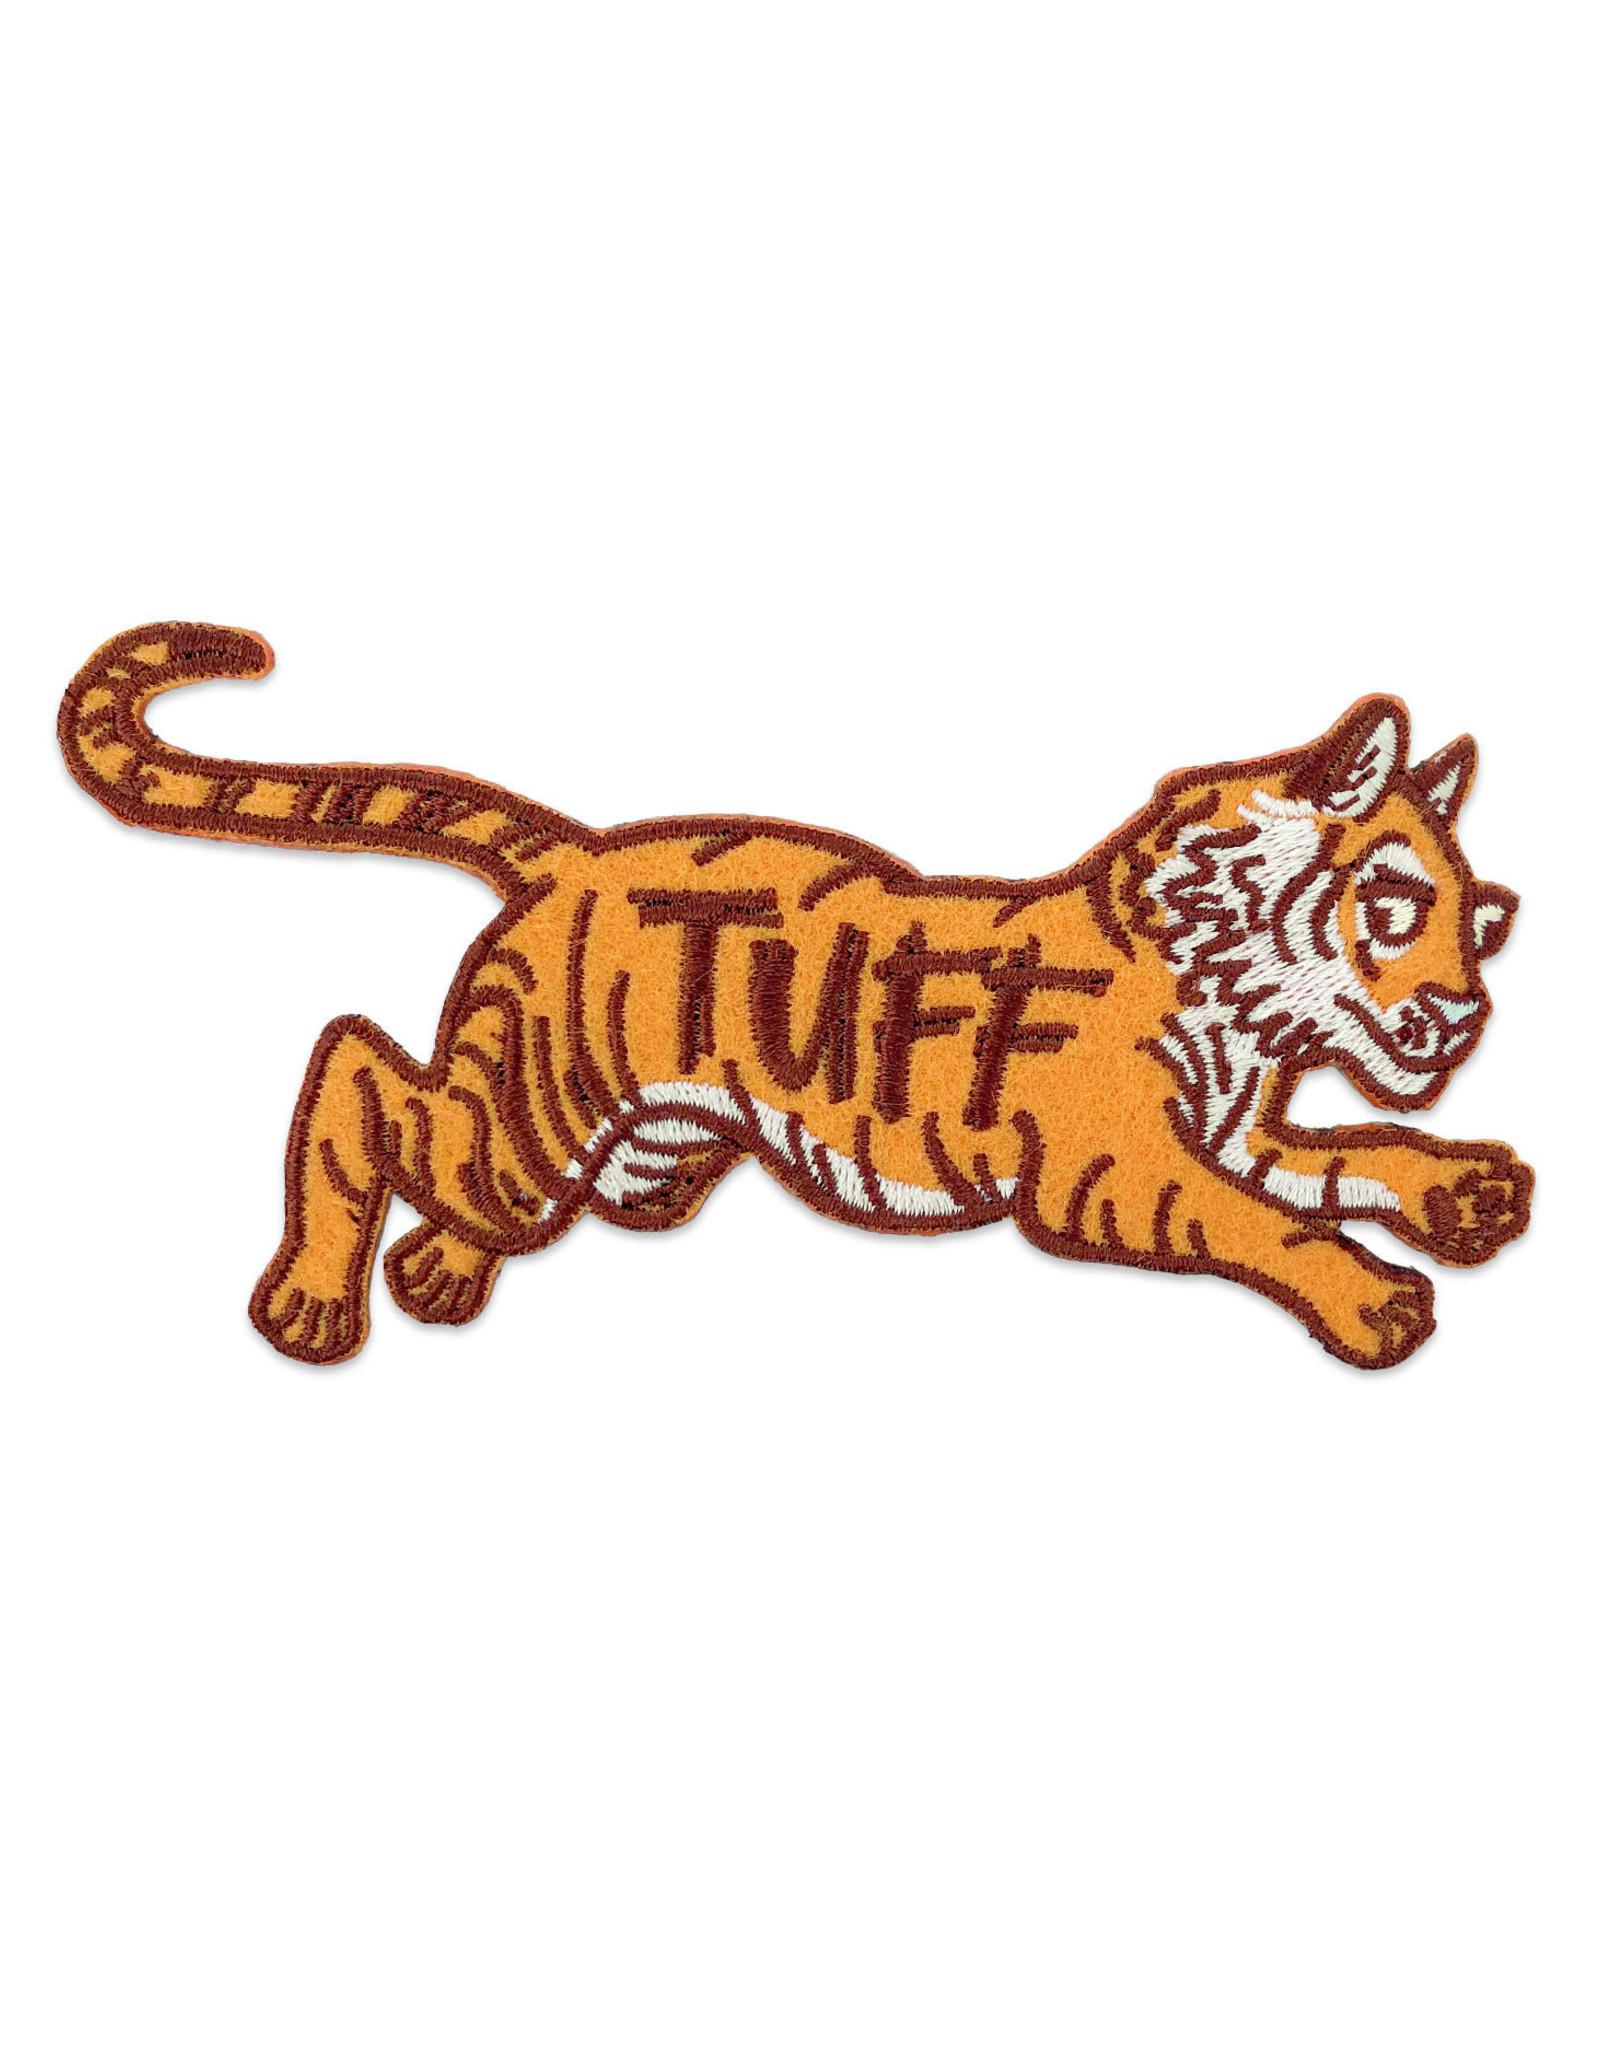 Tuff Tiger Patch